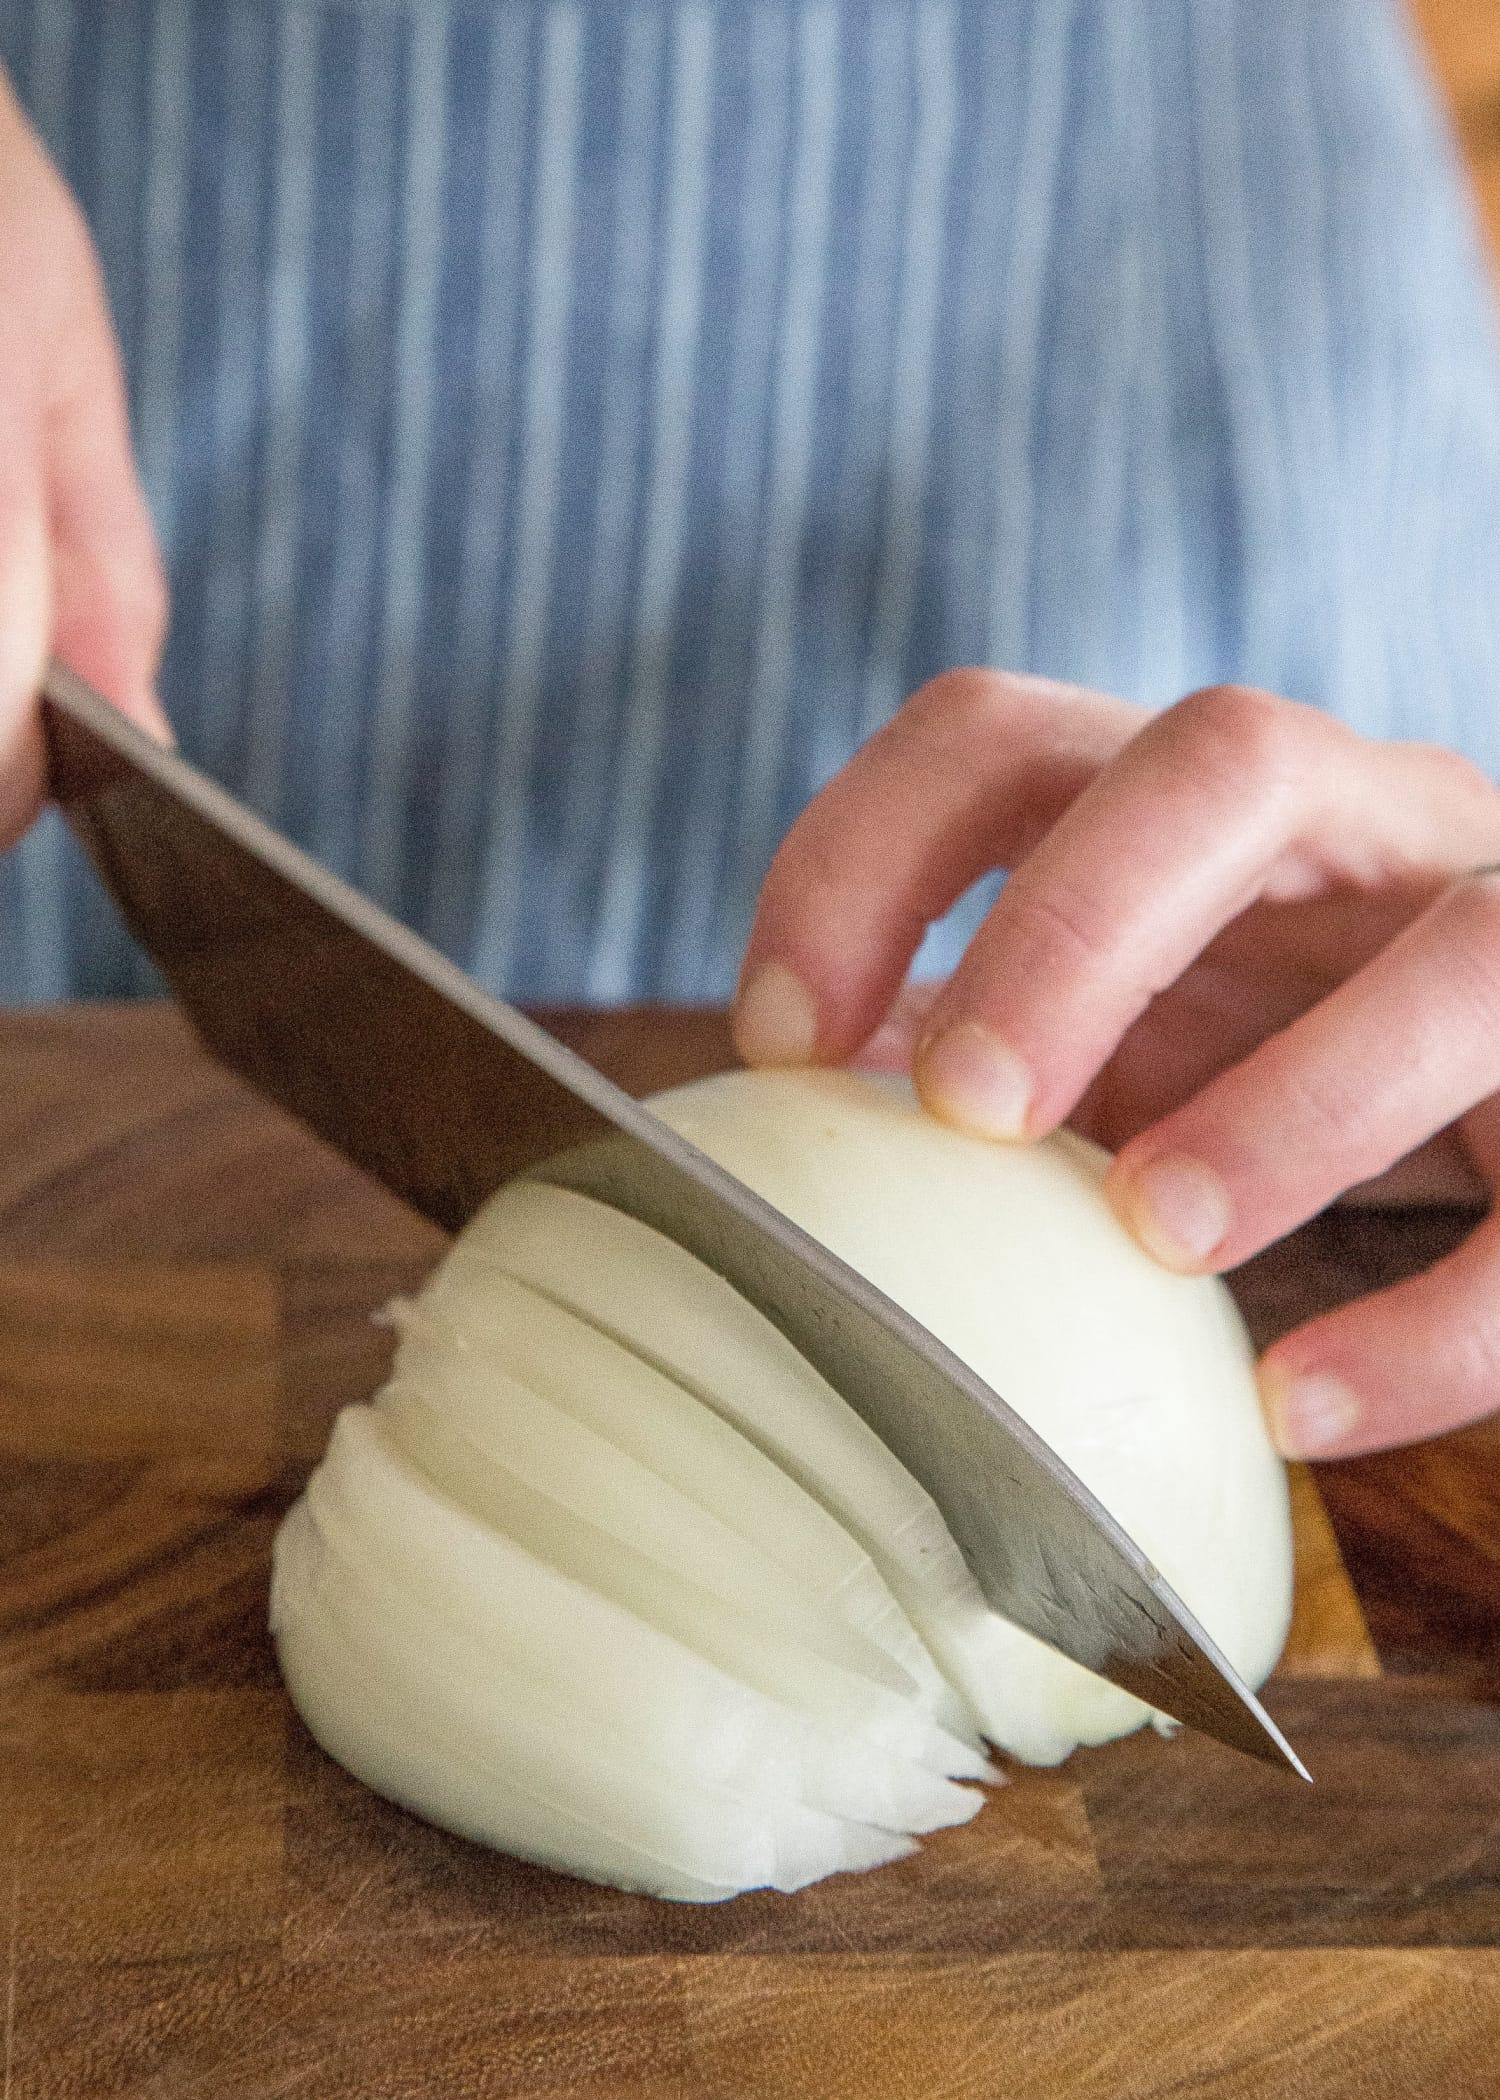 PSA: Your Cutting Board Is Too Small – And It's a Big Problem